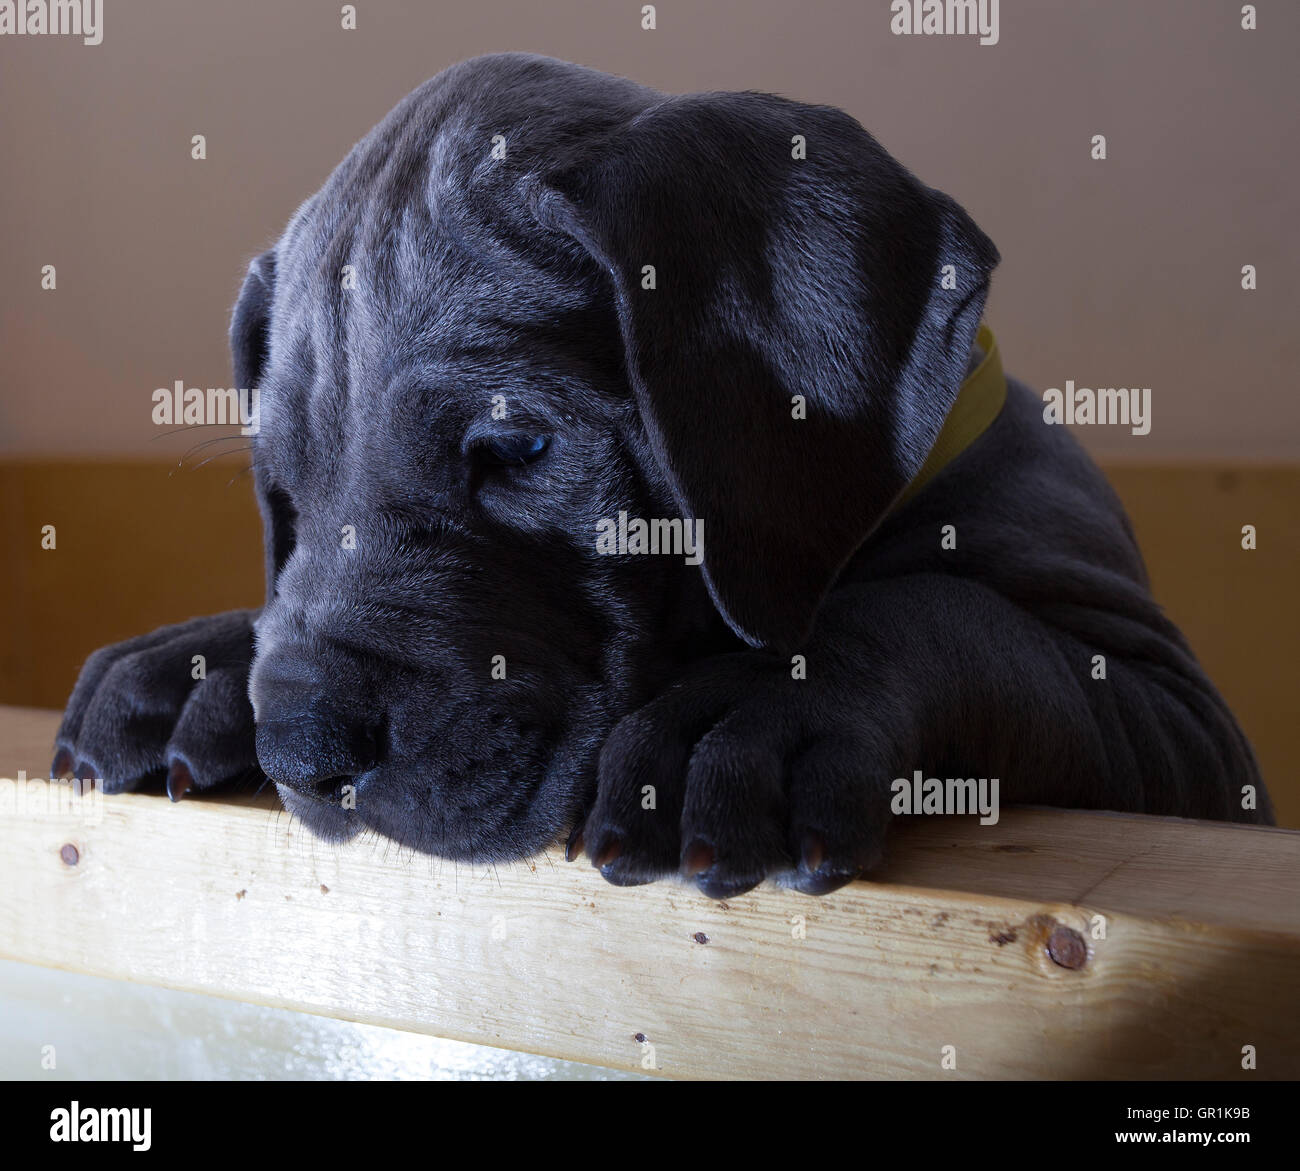 spotted puppy stock photos amp spotted puppy stock images